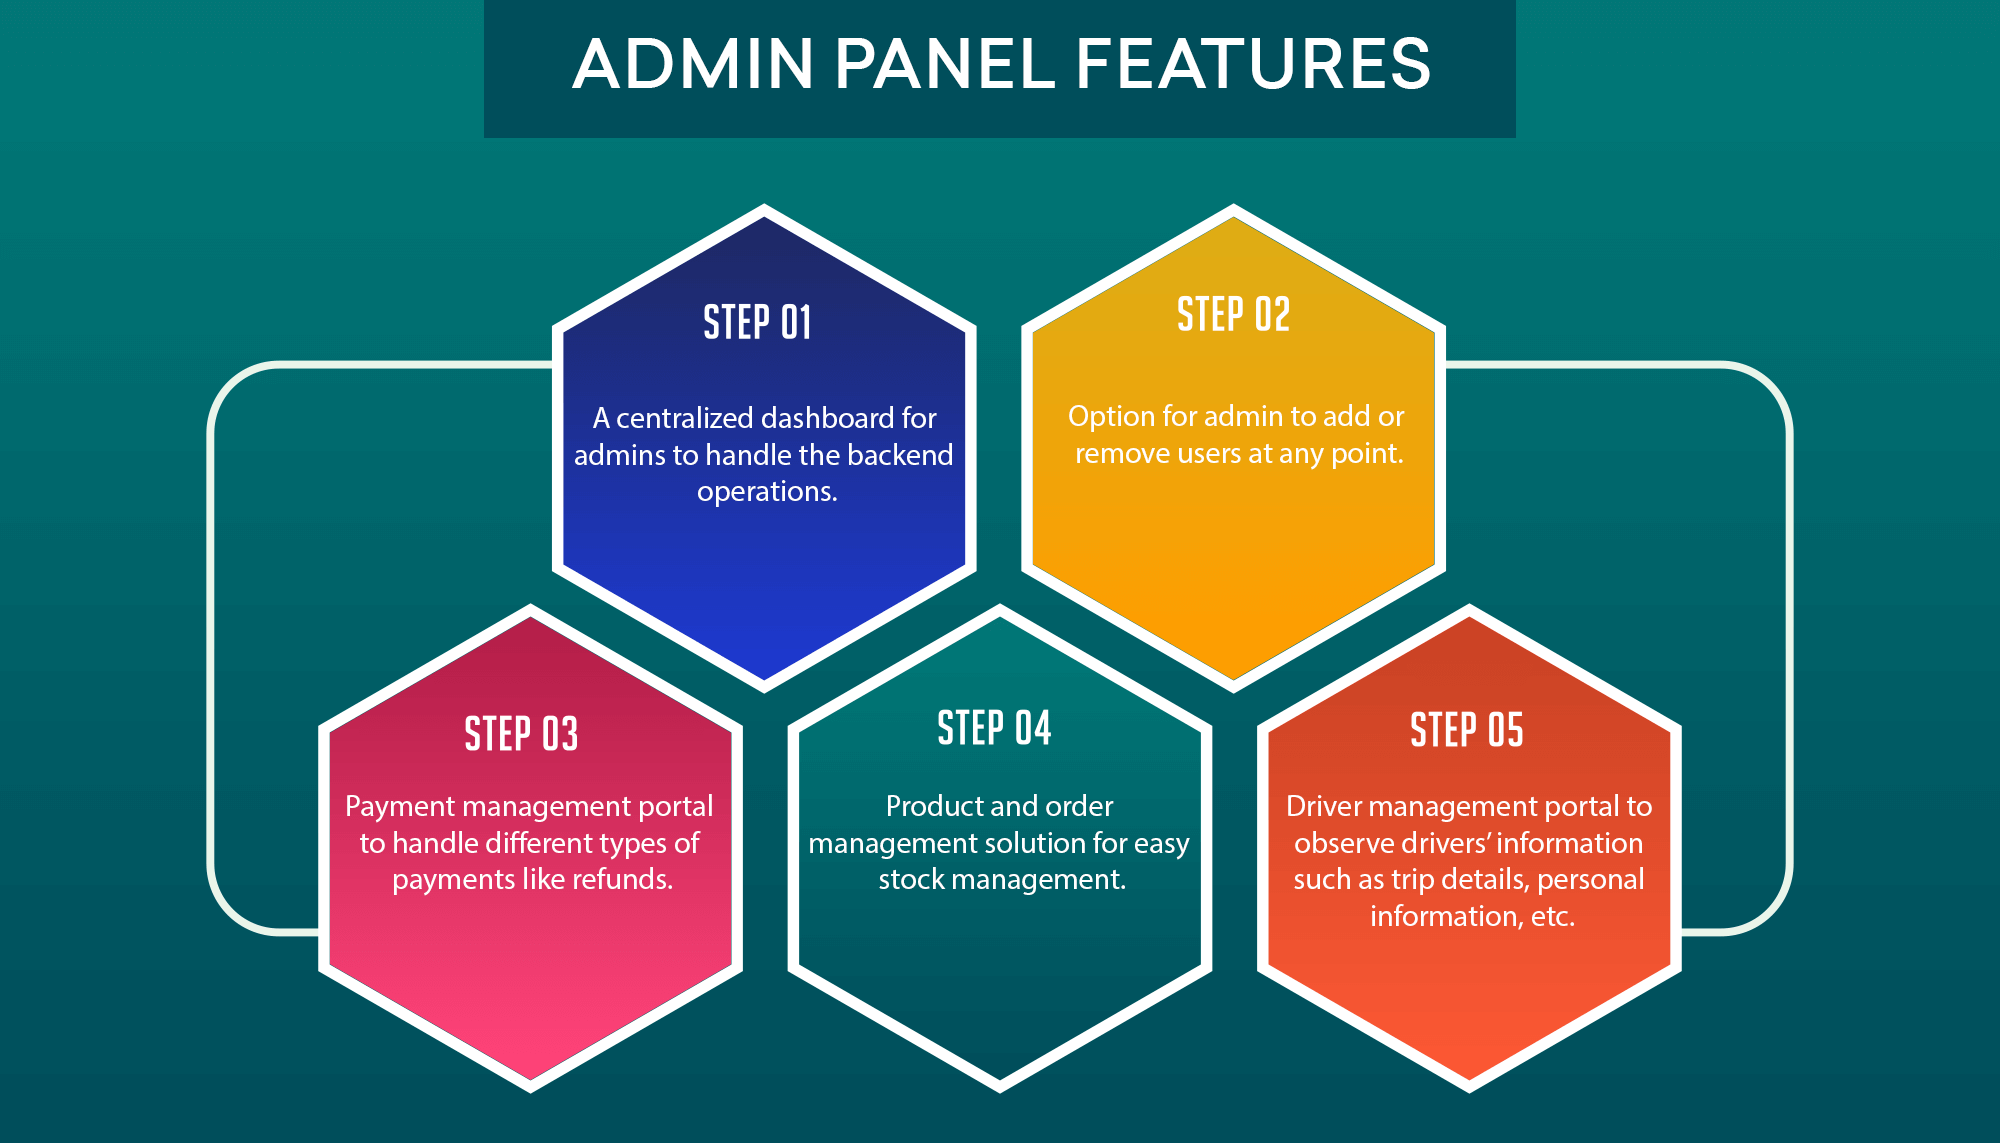 Admin panel features